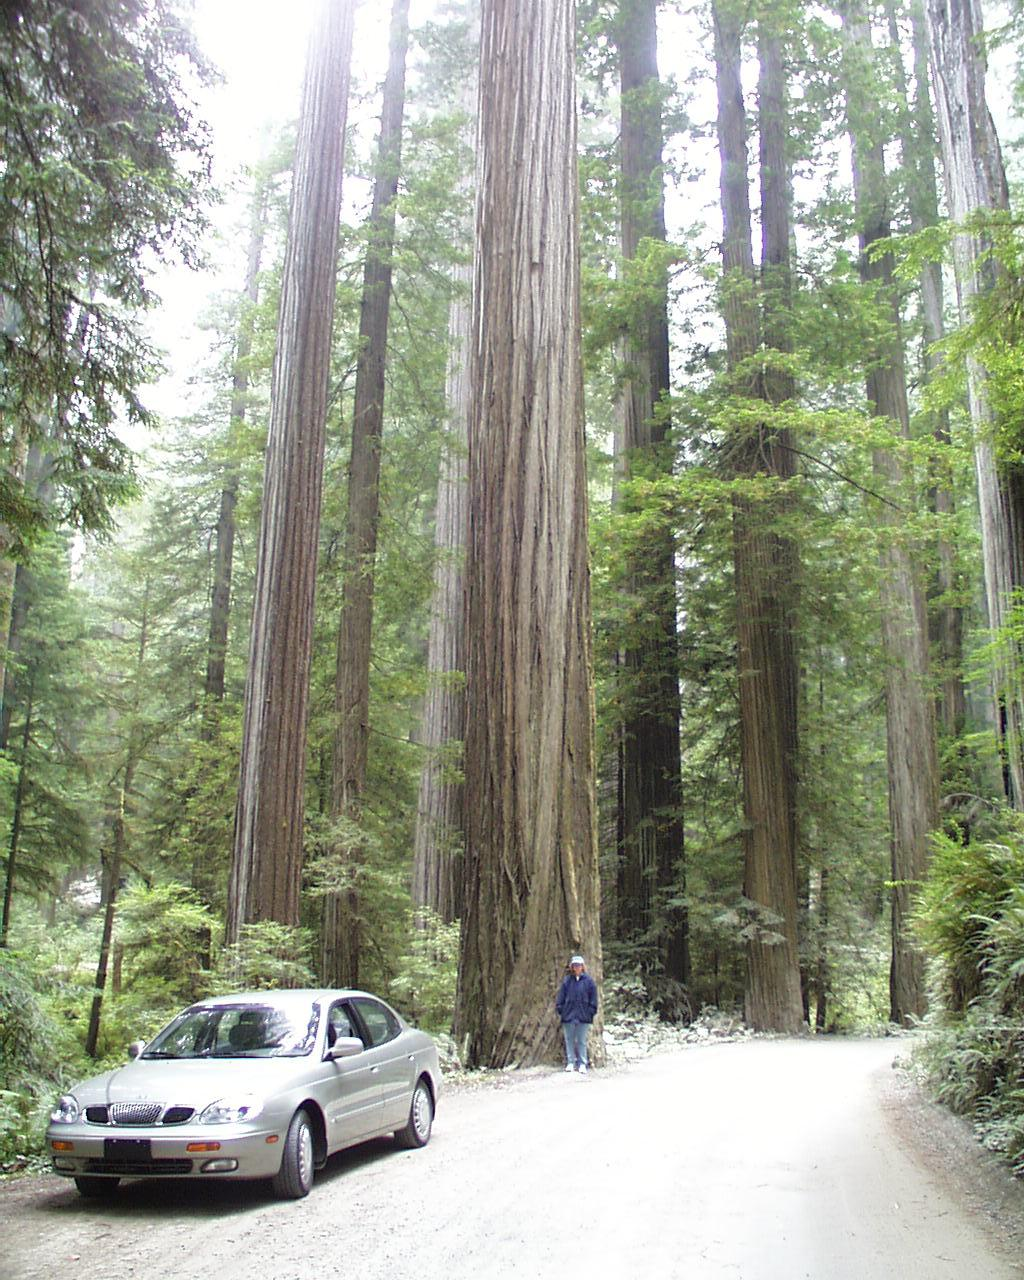 Coastal redwoods in Jebediah Smith Park with Bonnie standing by a large tree along the road